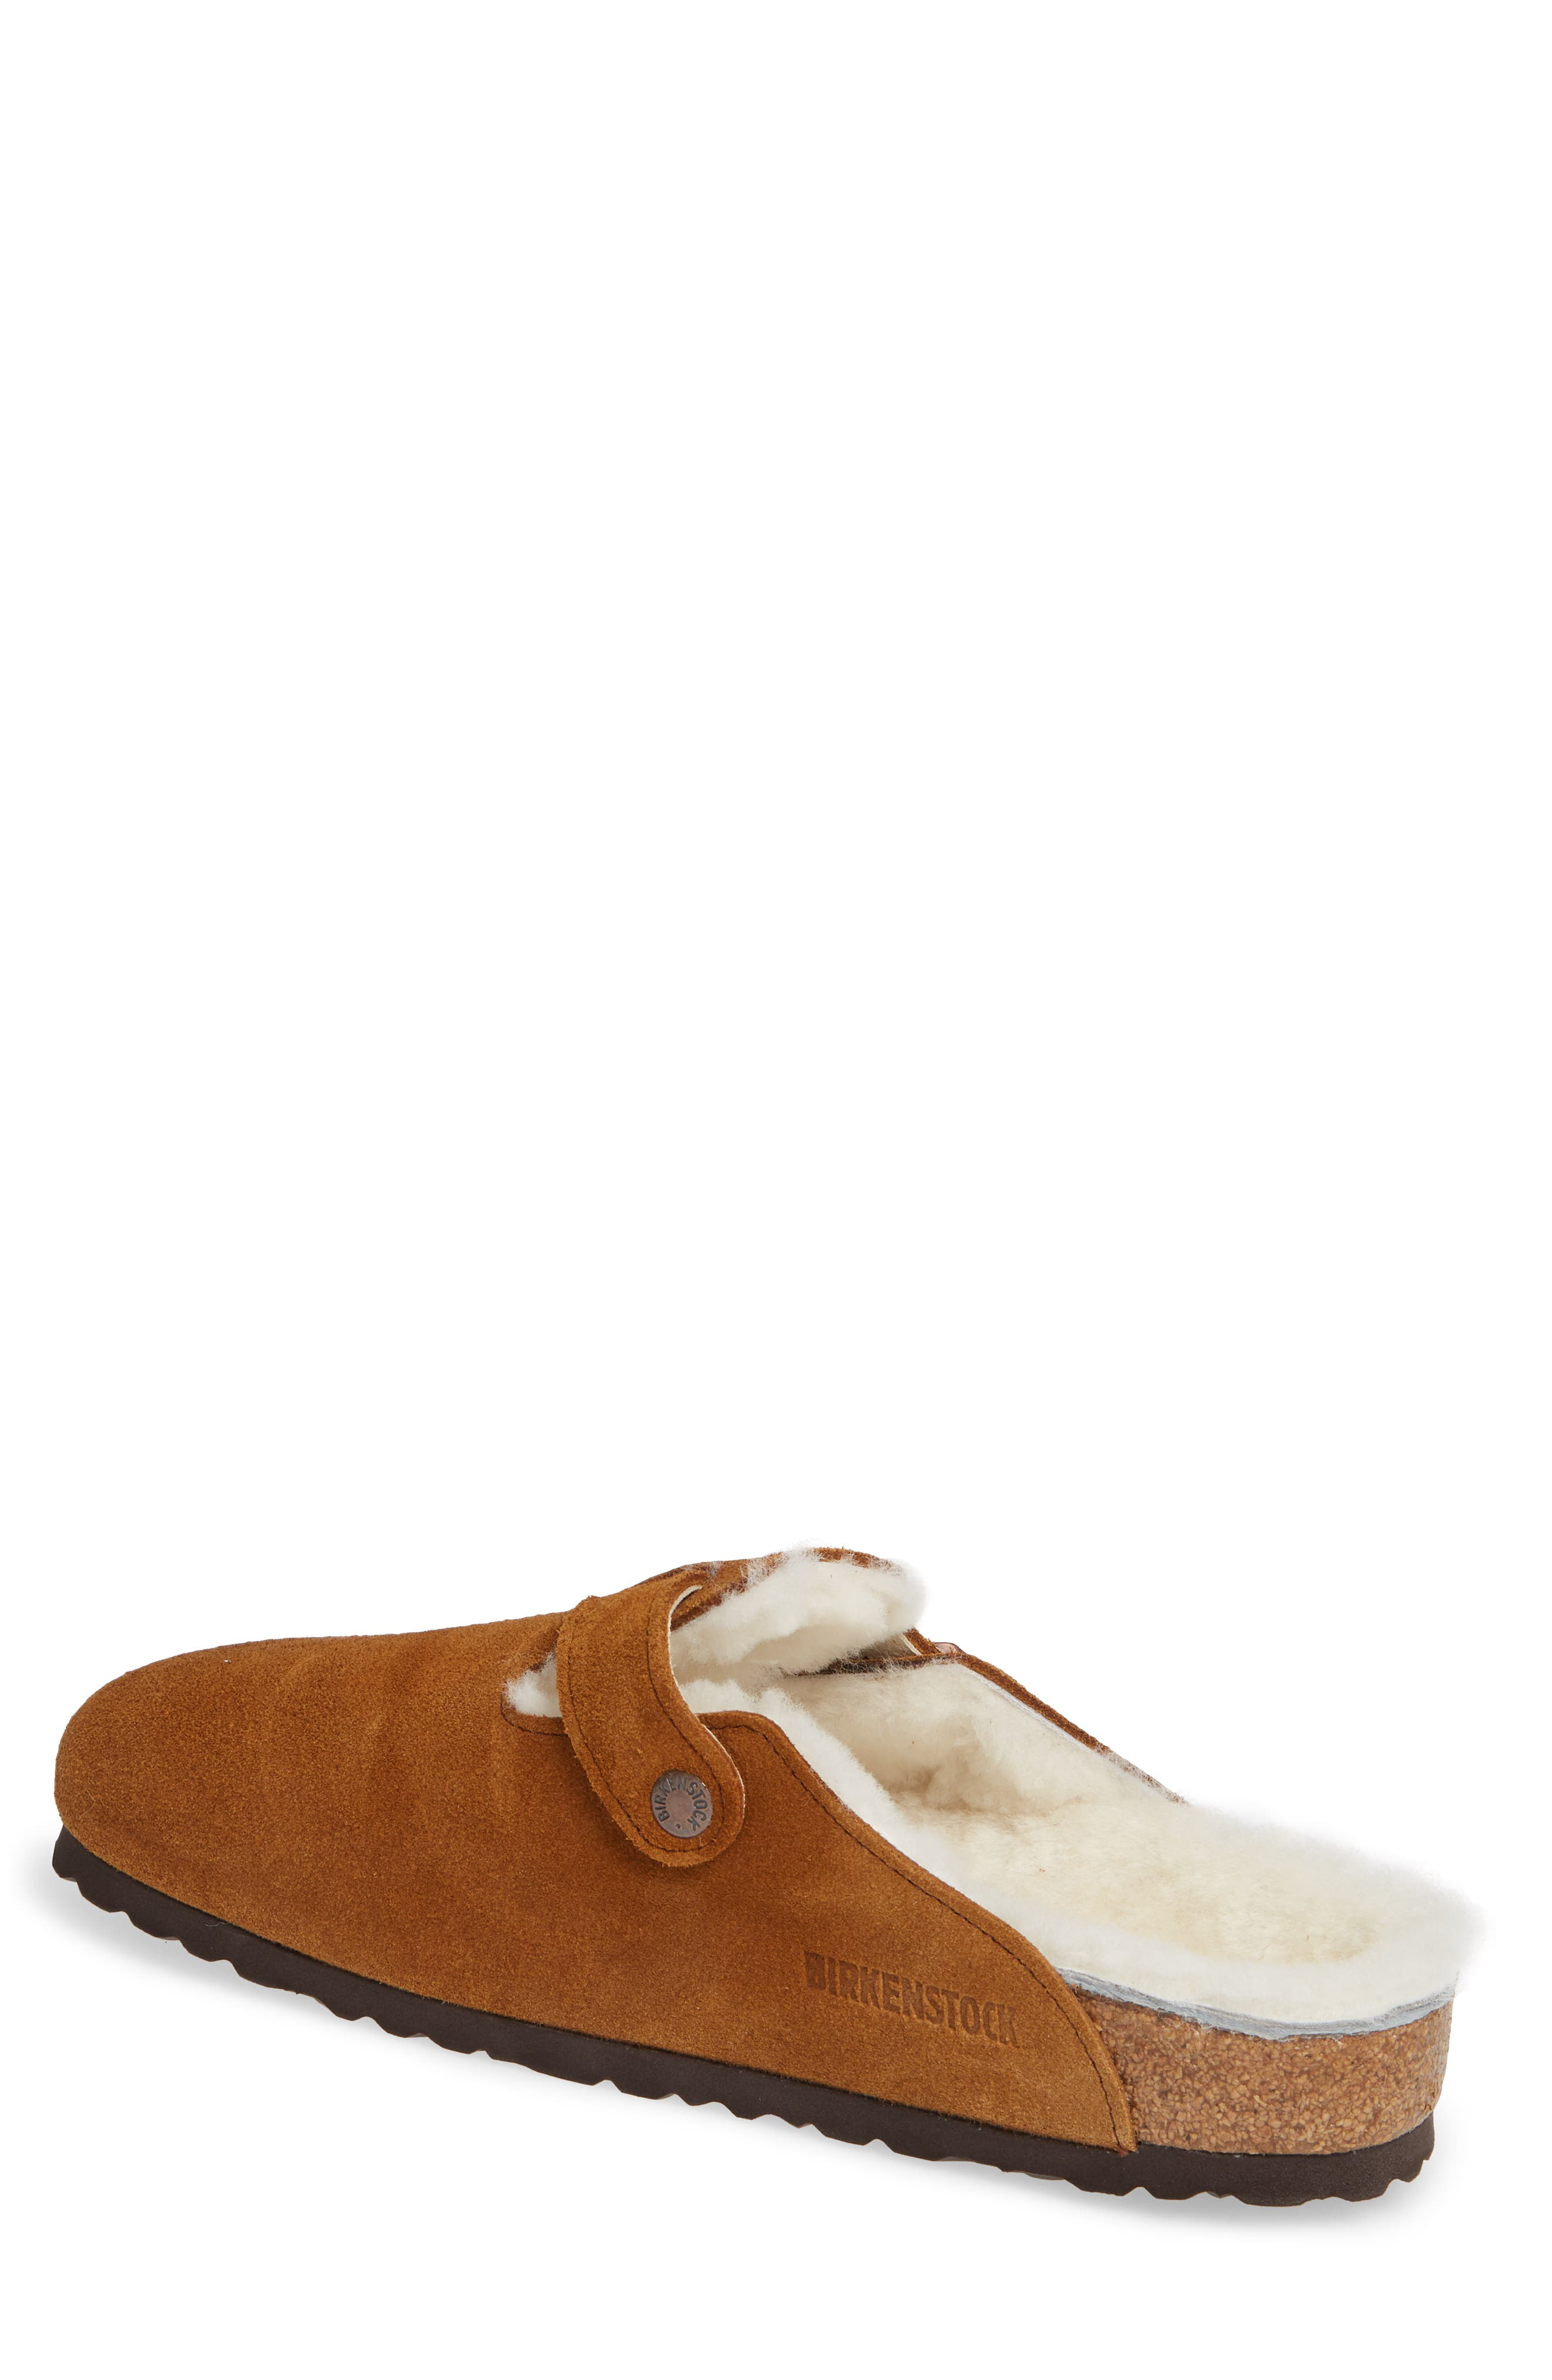 Boston Slip-On with Genuine Shearling Lining,                             Alternate thumbnail 2, color,                             BEIGE